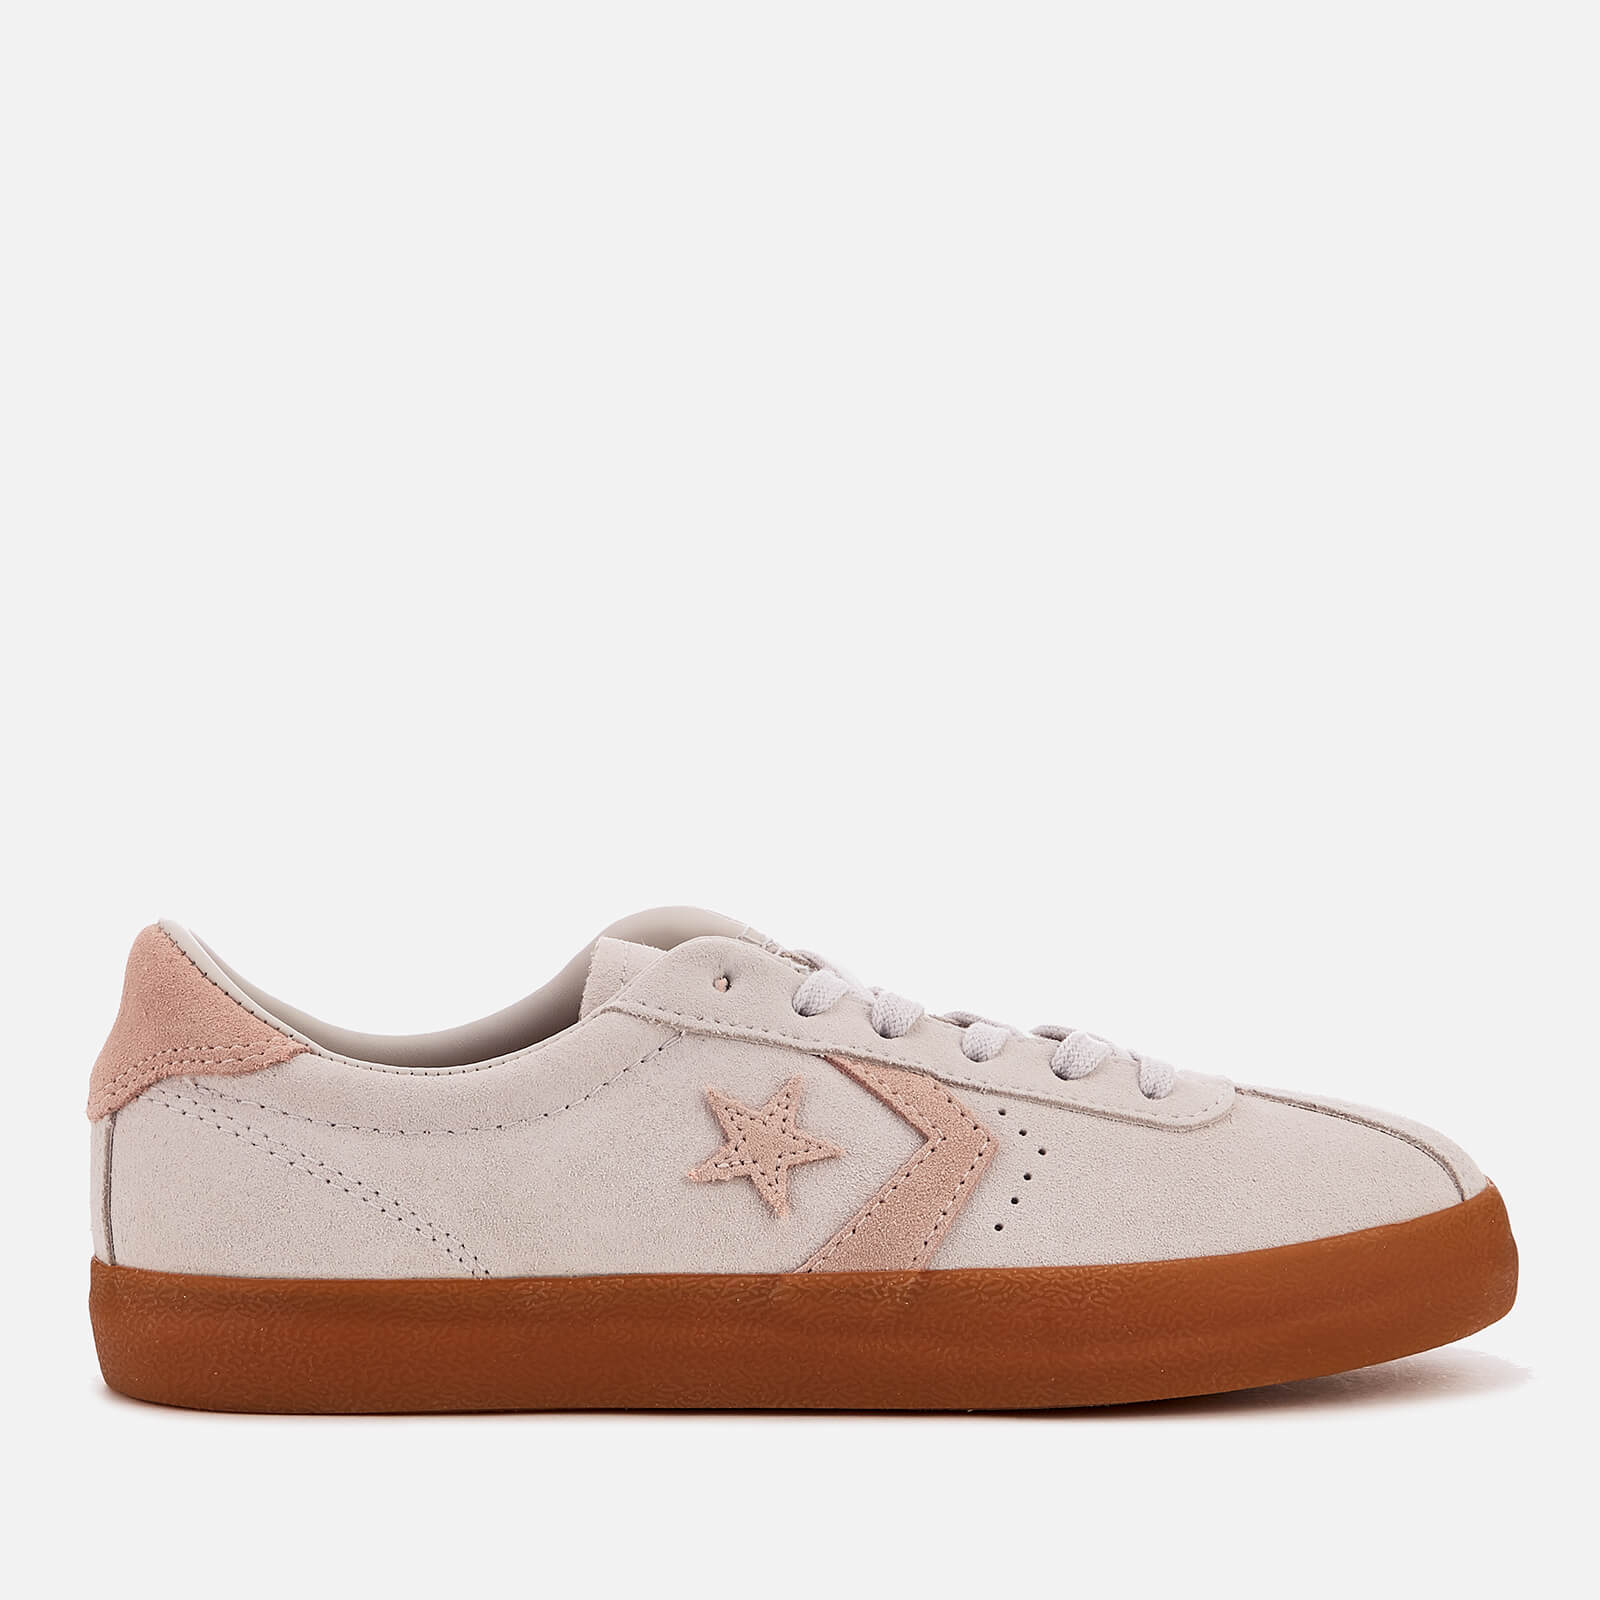 217151cde21a Converse Women s Breakpoint Ox Trainers - Pale Putty Particle Beige Womens  Footwear